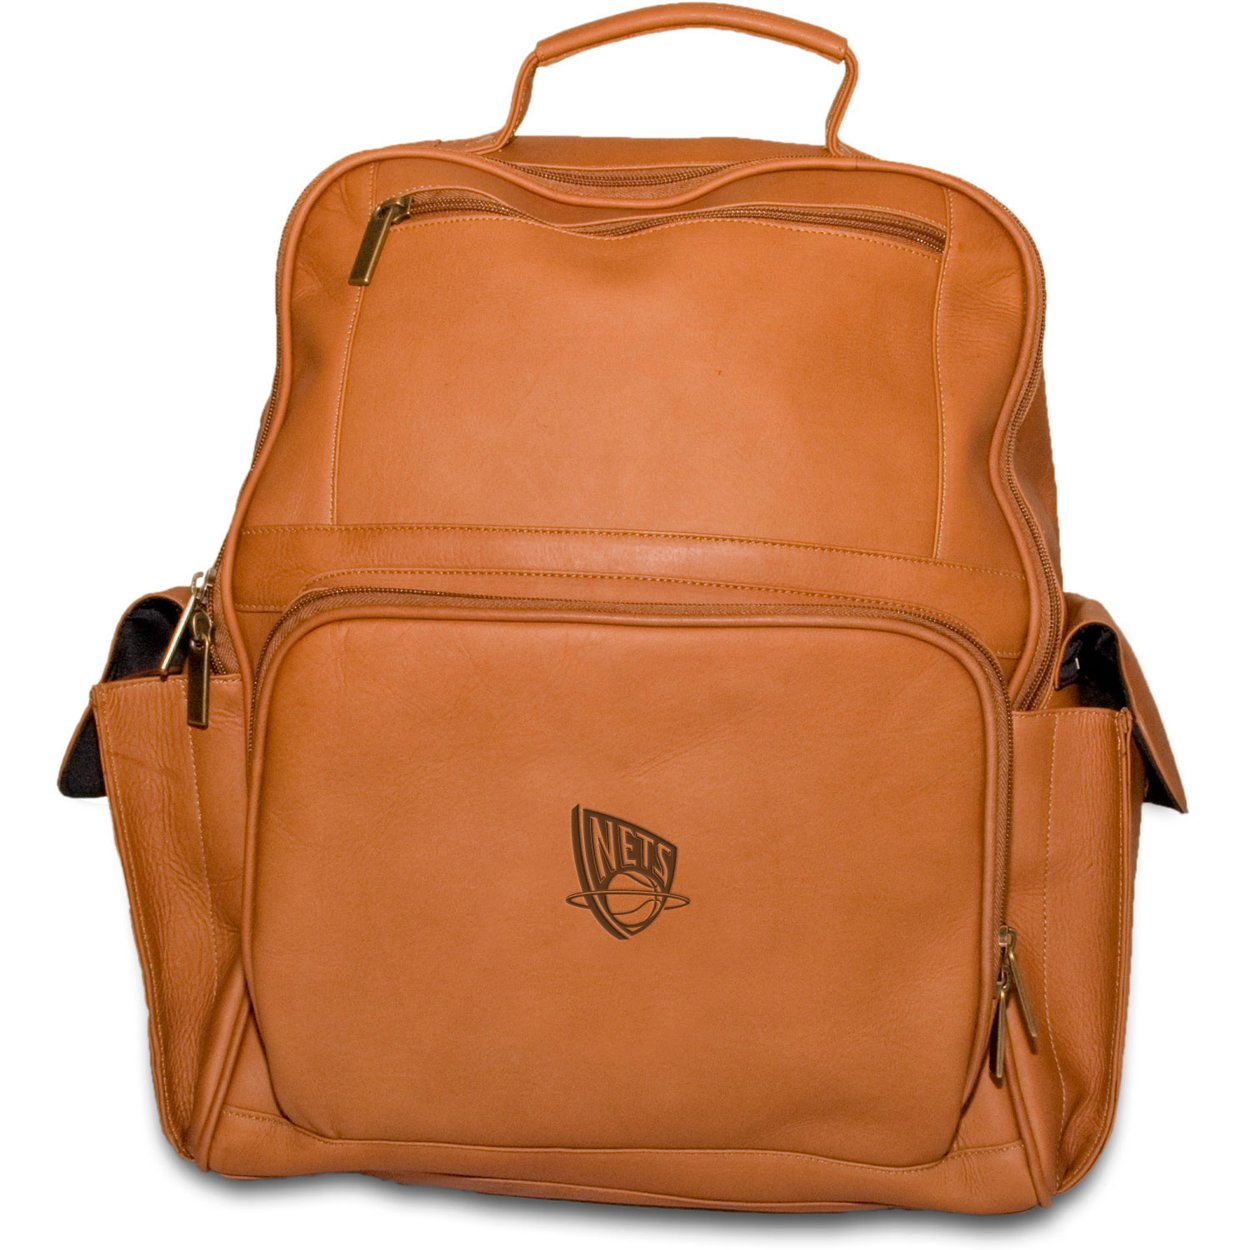 NBA New Jersey Nets Tan Leather Large Computer Backpack